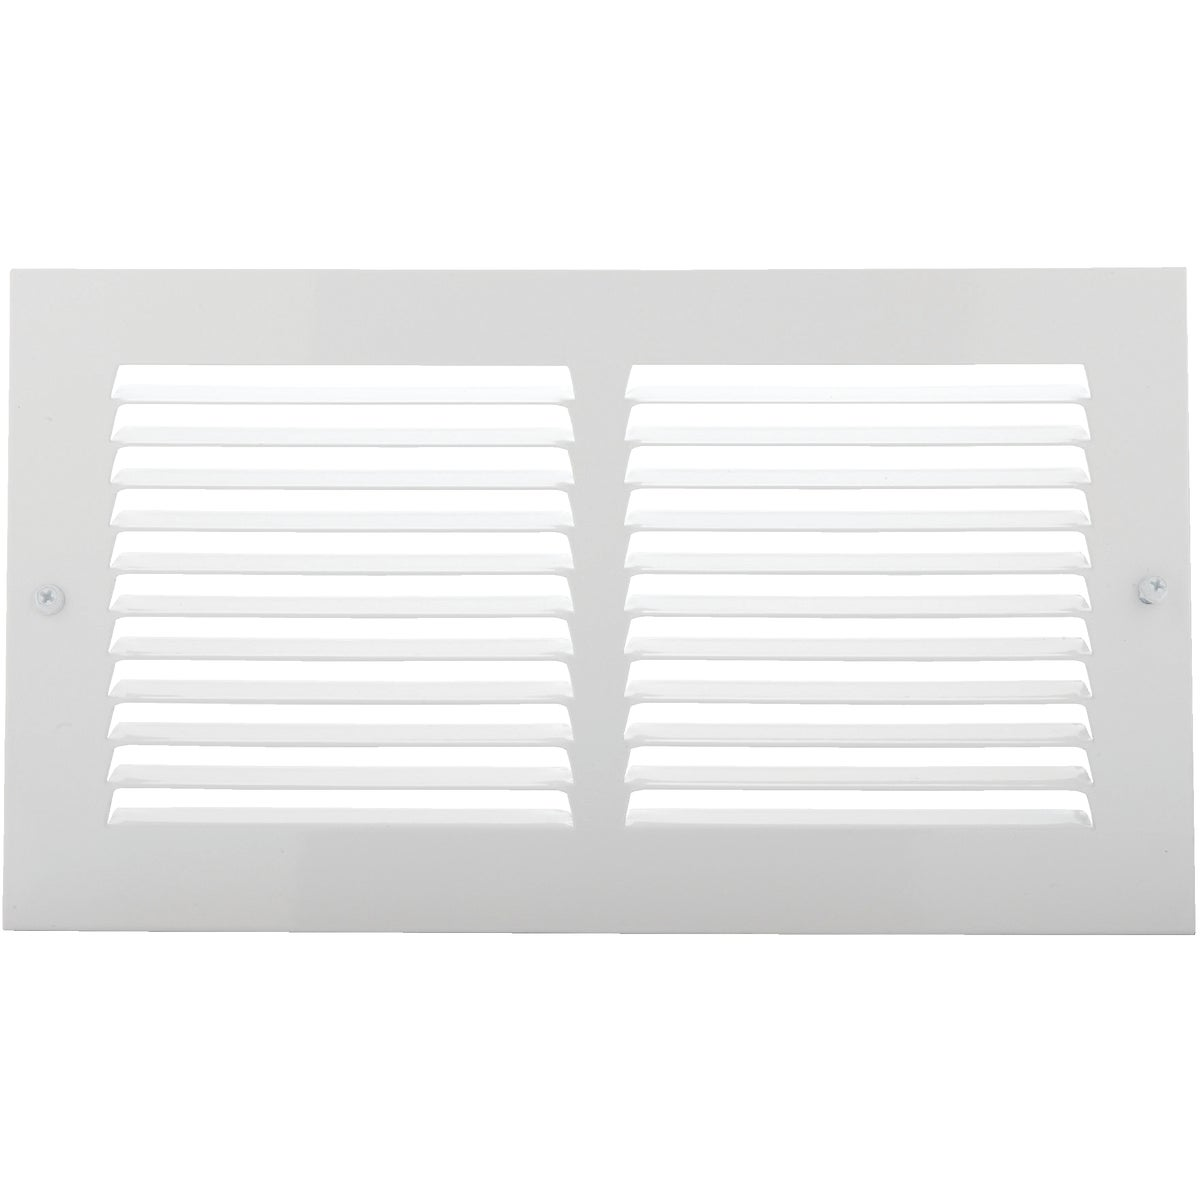 6X12 WH RETRN AIR GRILLE - 1RA1206WH by Do it Best